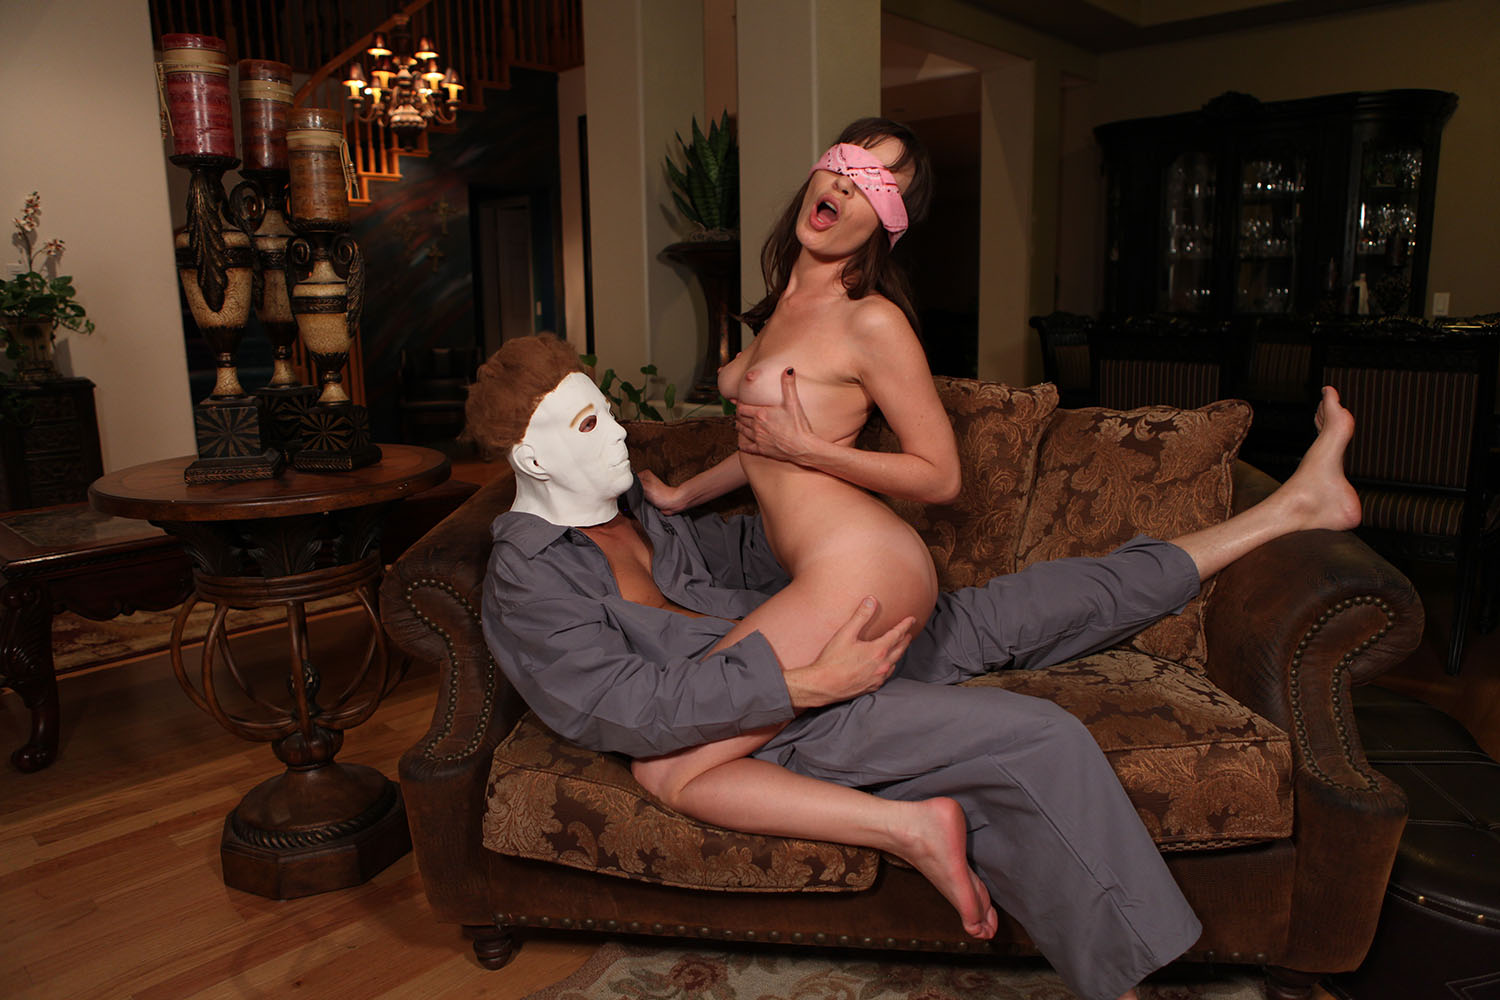 halloween-sex-story-extreme-x-rated-sex-video